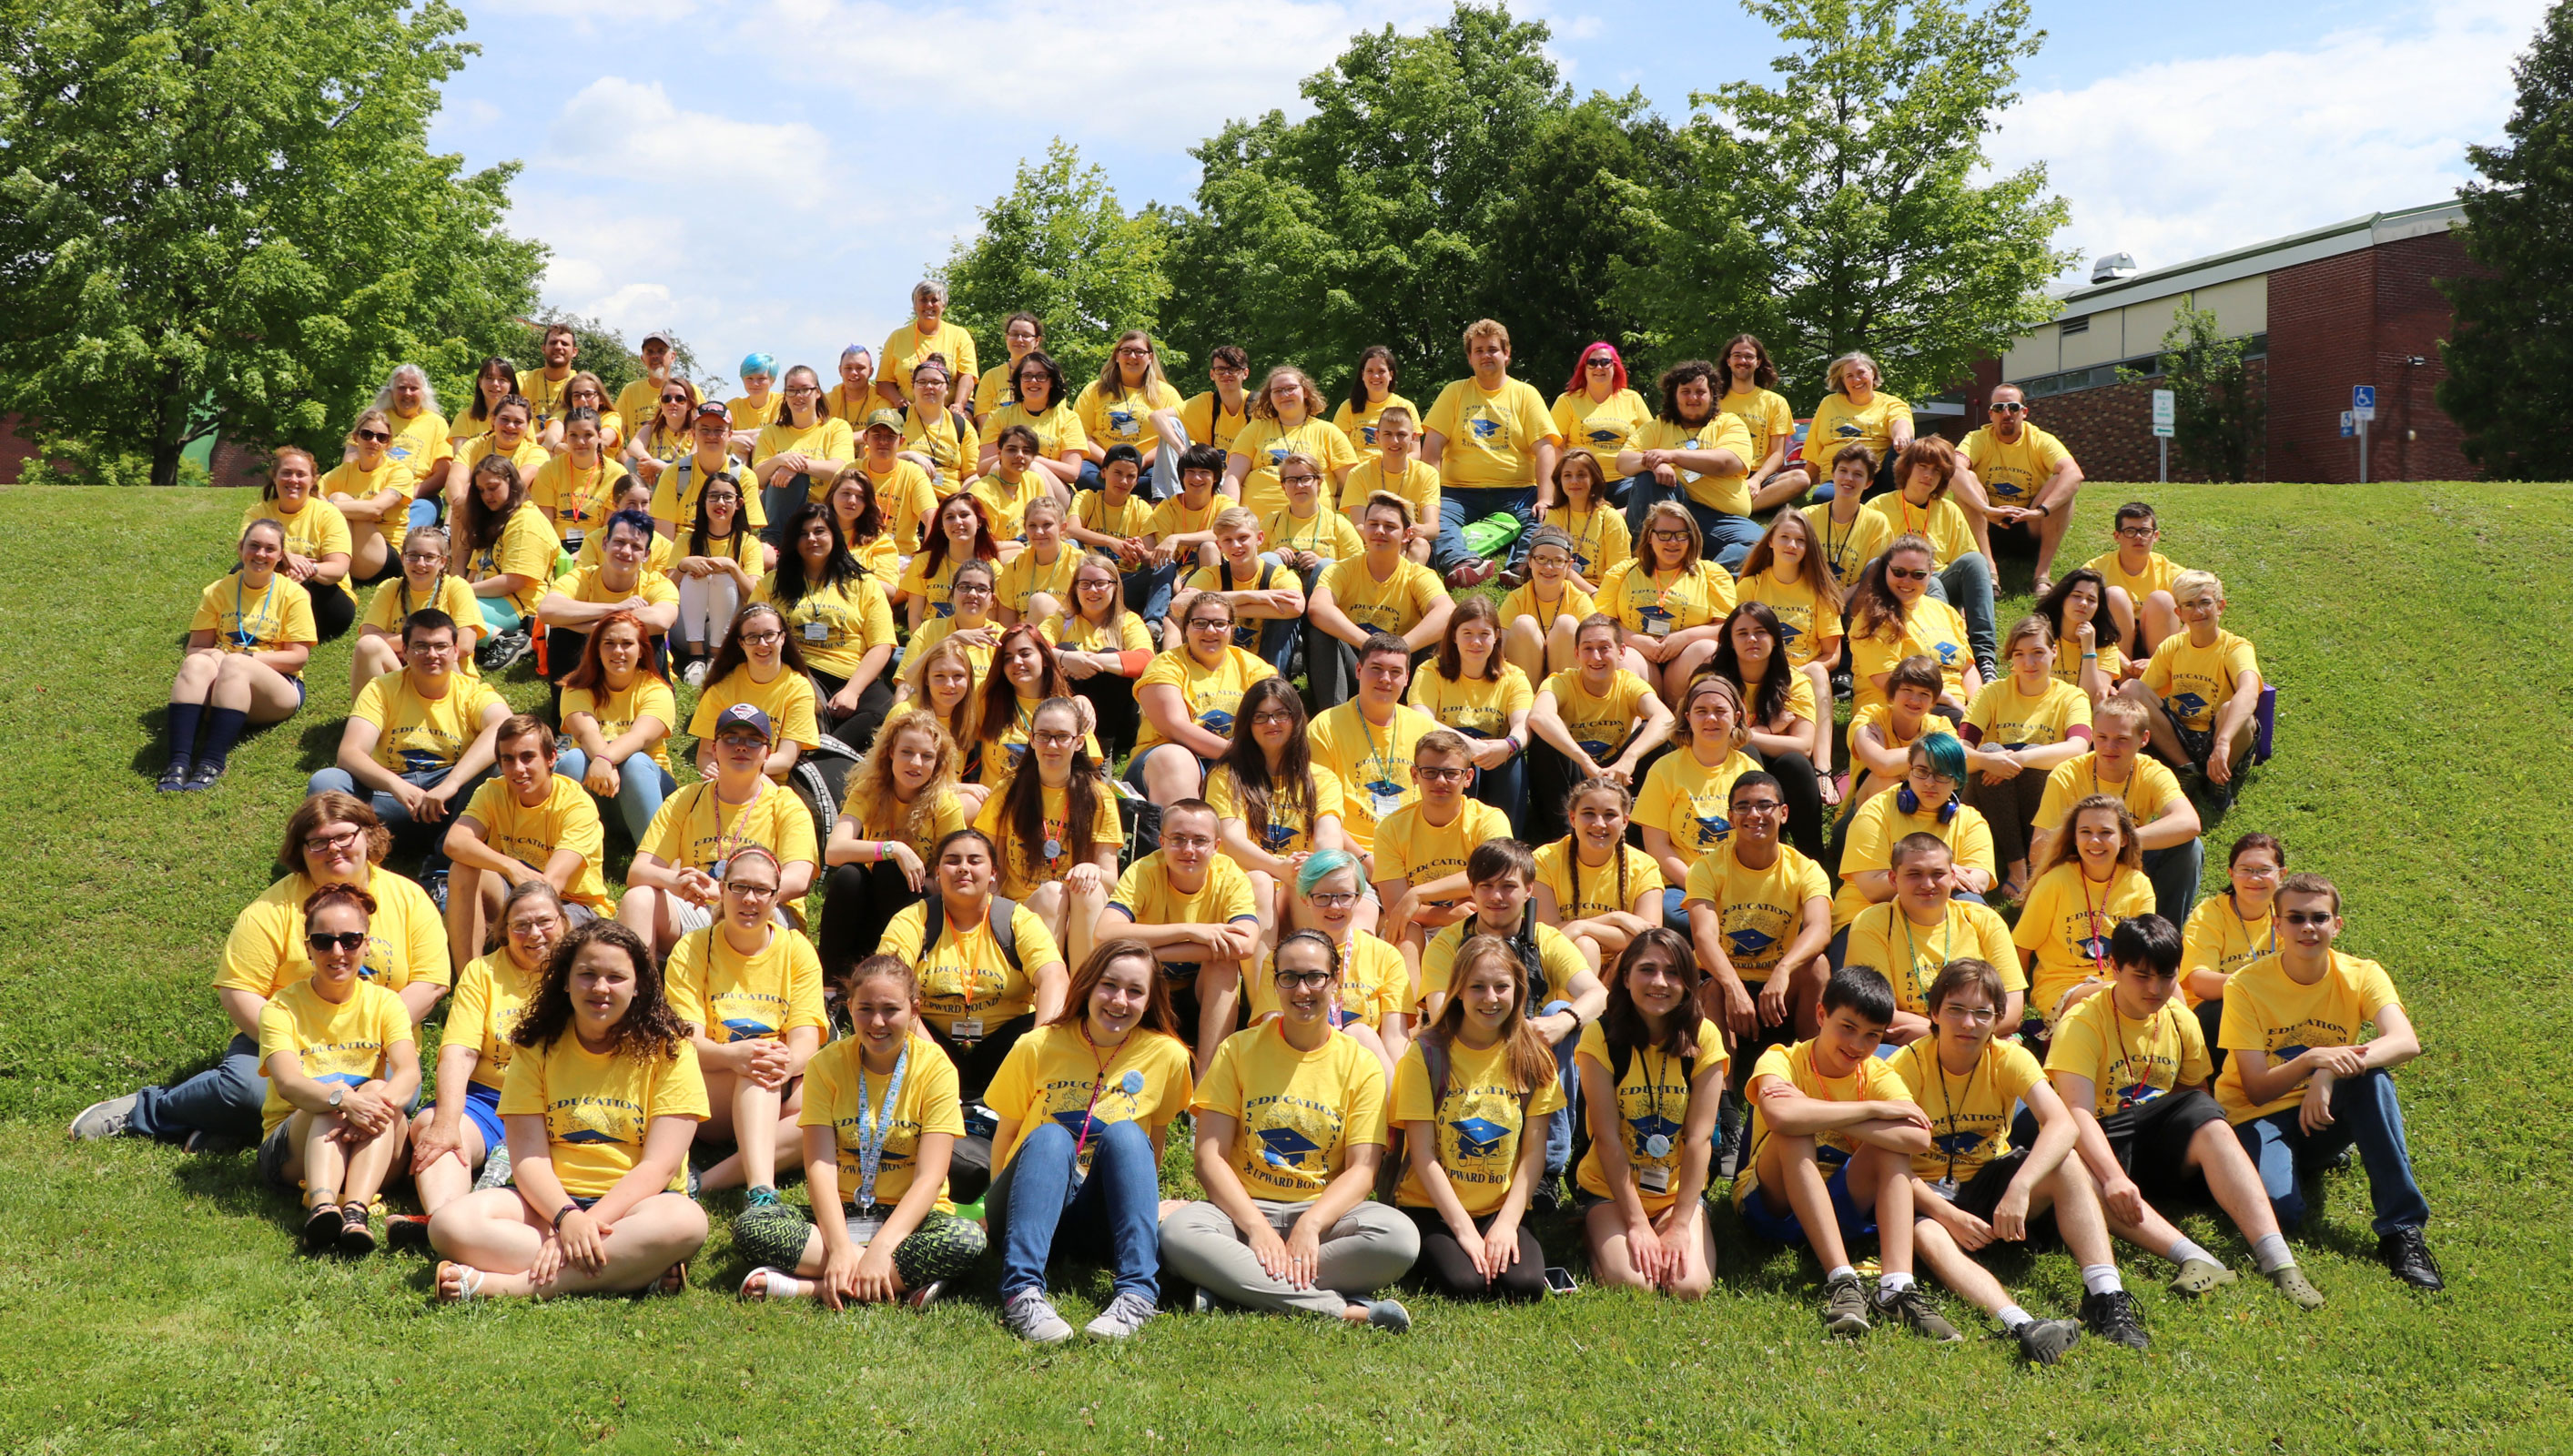 Summer positions available at TRIO Upward Bound